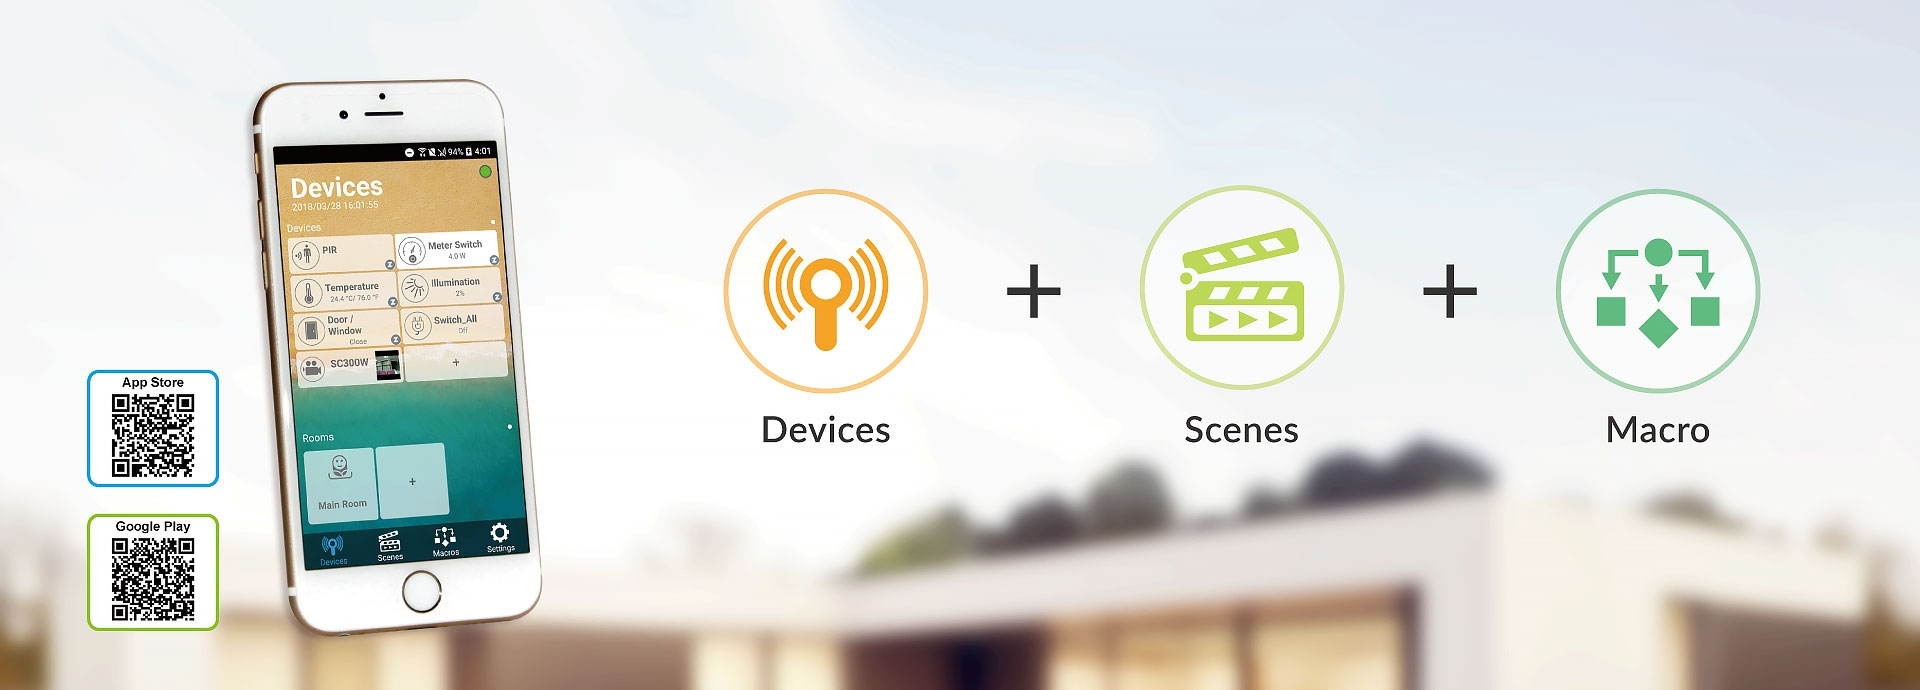 AirLive SmartLife Plus App_Product List_Smart Home Product_Smart IoT